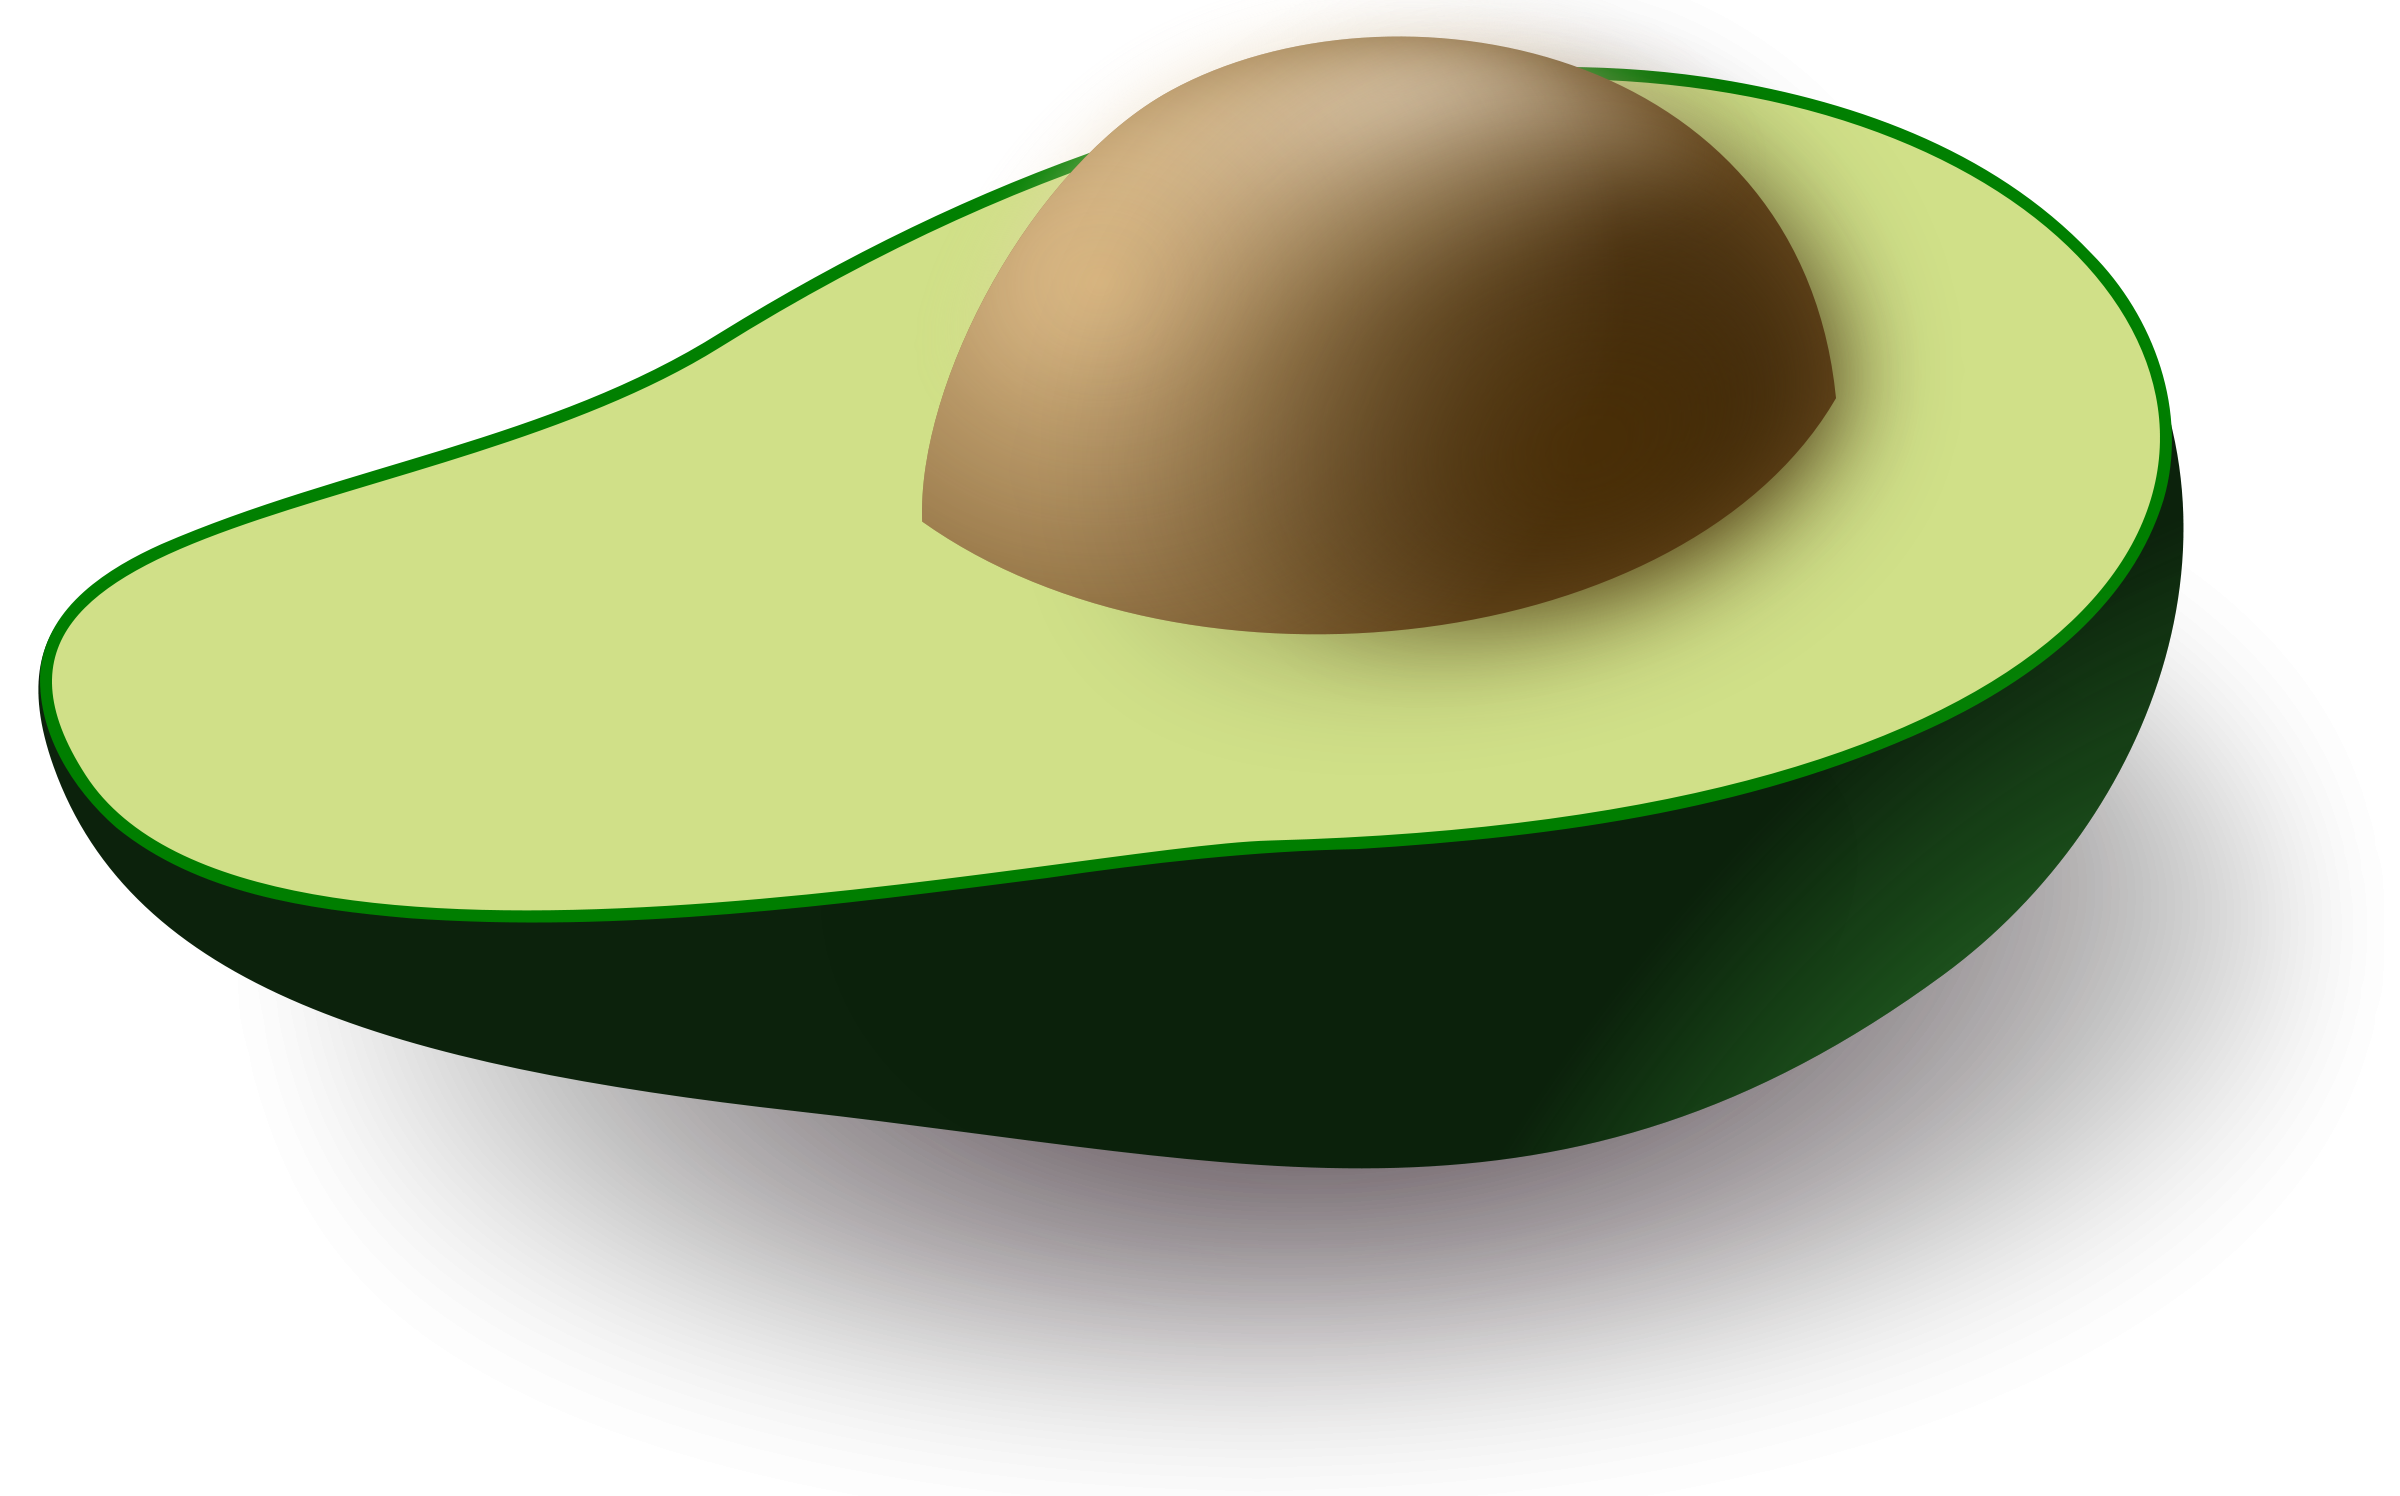 Transparent avocado open. Png images free download